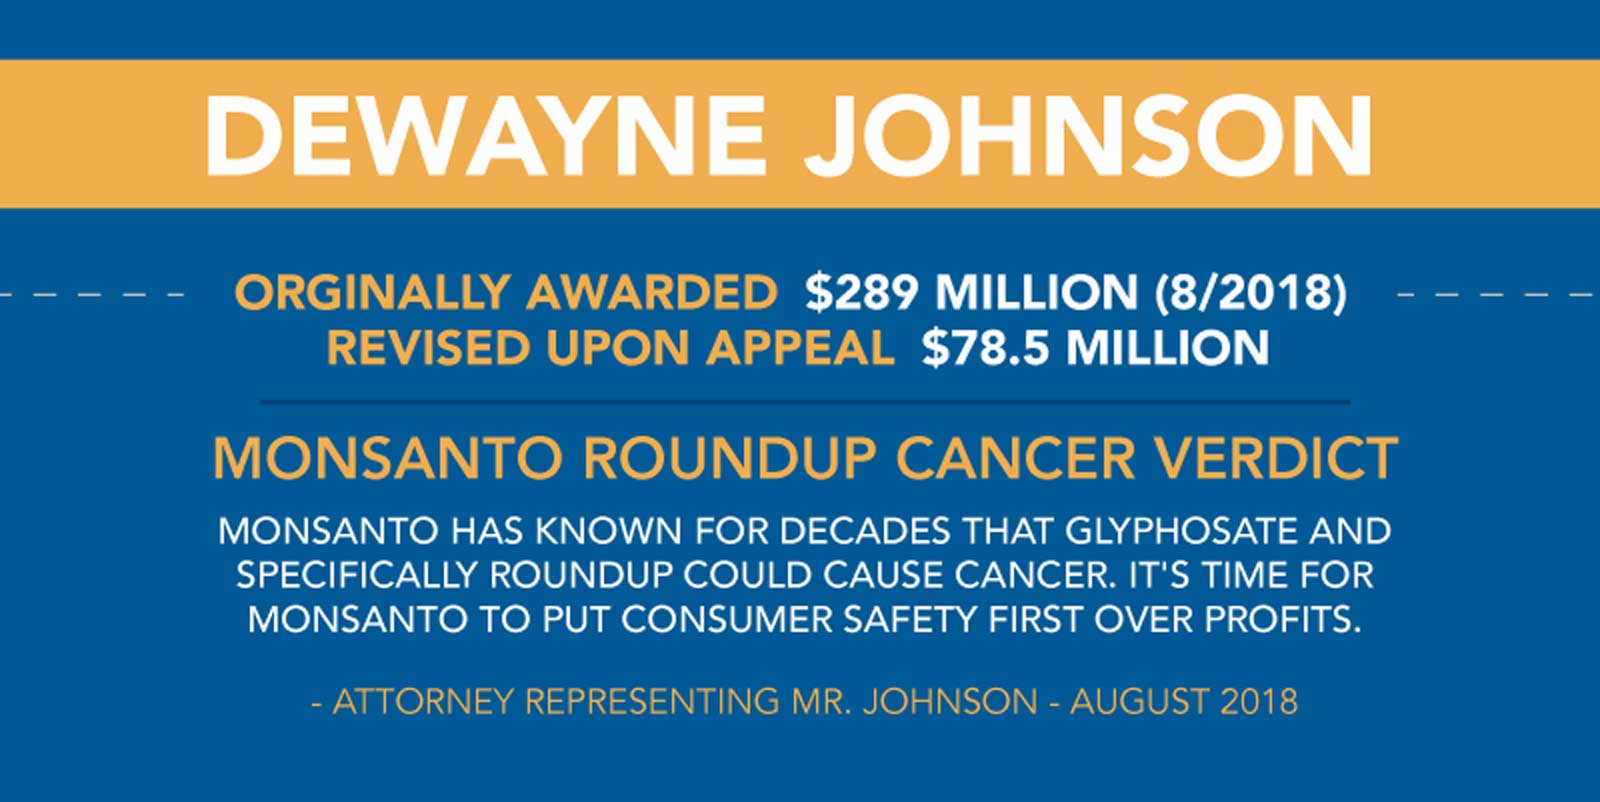 roundup-lawsuit-cancer-verdict-dewayne-johnson